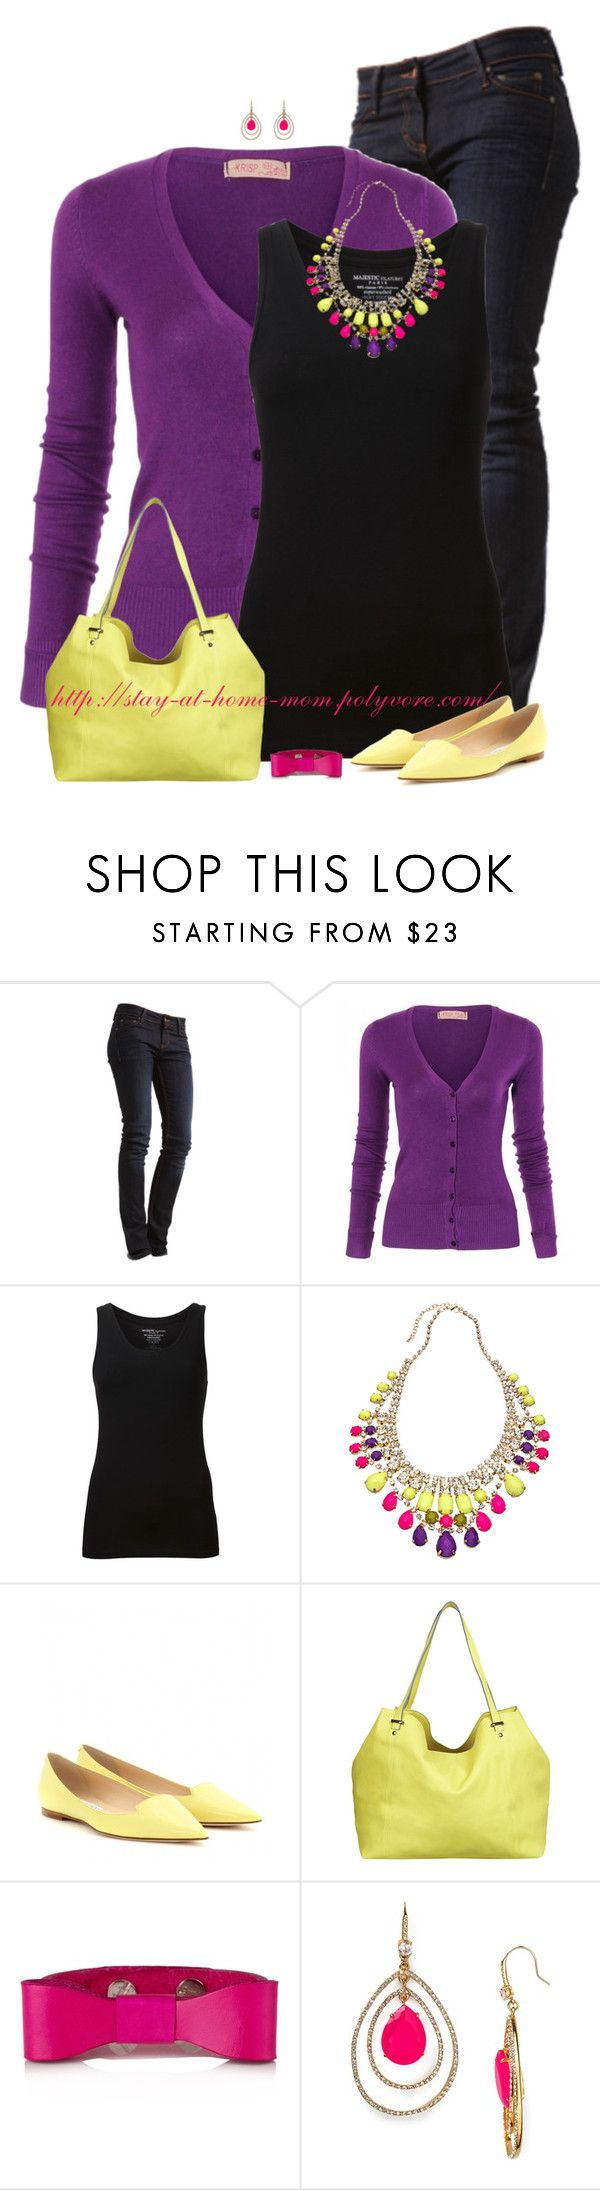 """Purple Cardigan & Colorful Jewelry"" by stay-at-home-mom ❤ liked on Polyvore featuring MUSTANG, Majestic Filatures, Blu Bijoux, Jimmy Choo, Miss Selfridge, Juicy Couture and jimmychoo"